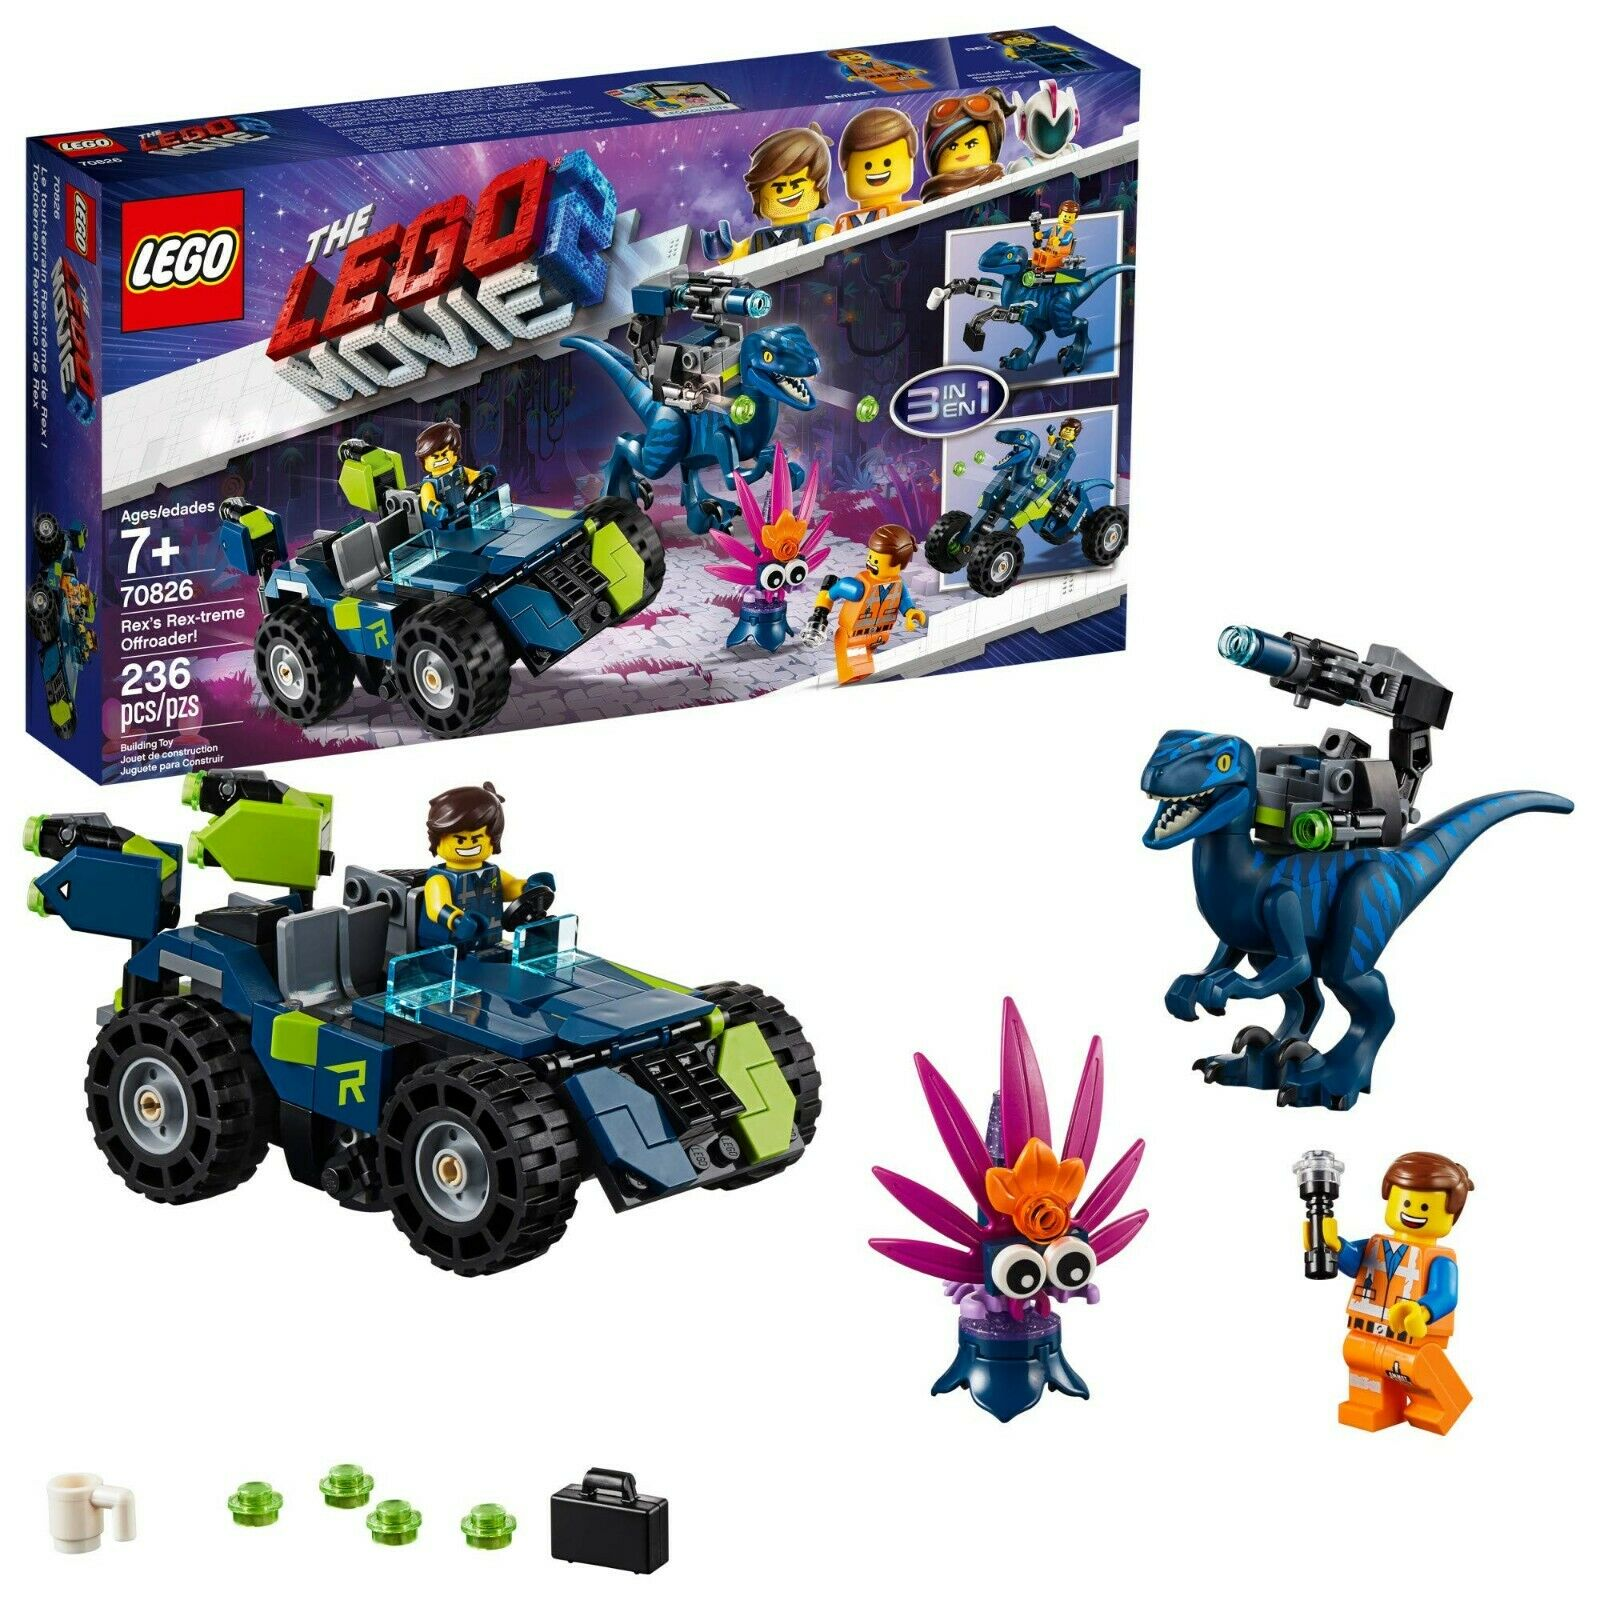 LEGO THE LEGO MOVIE 2 Rex's Rex-treme Offroader    70826 Dinosaur Car Toy Set 5cad4b